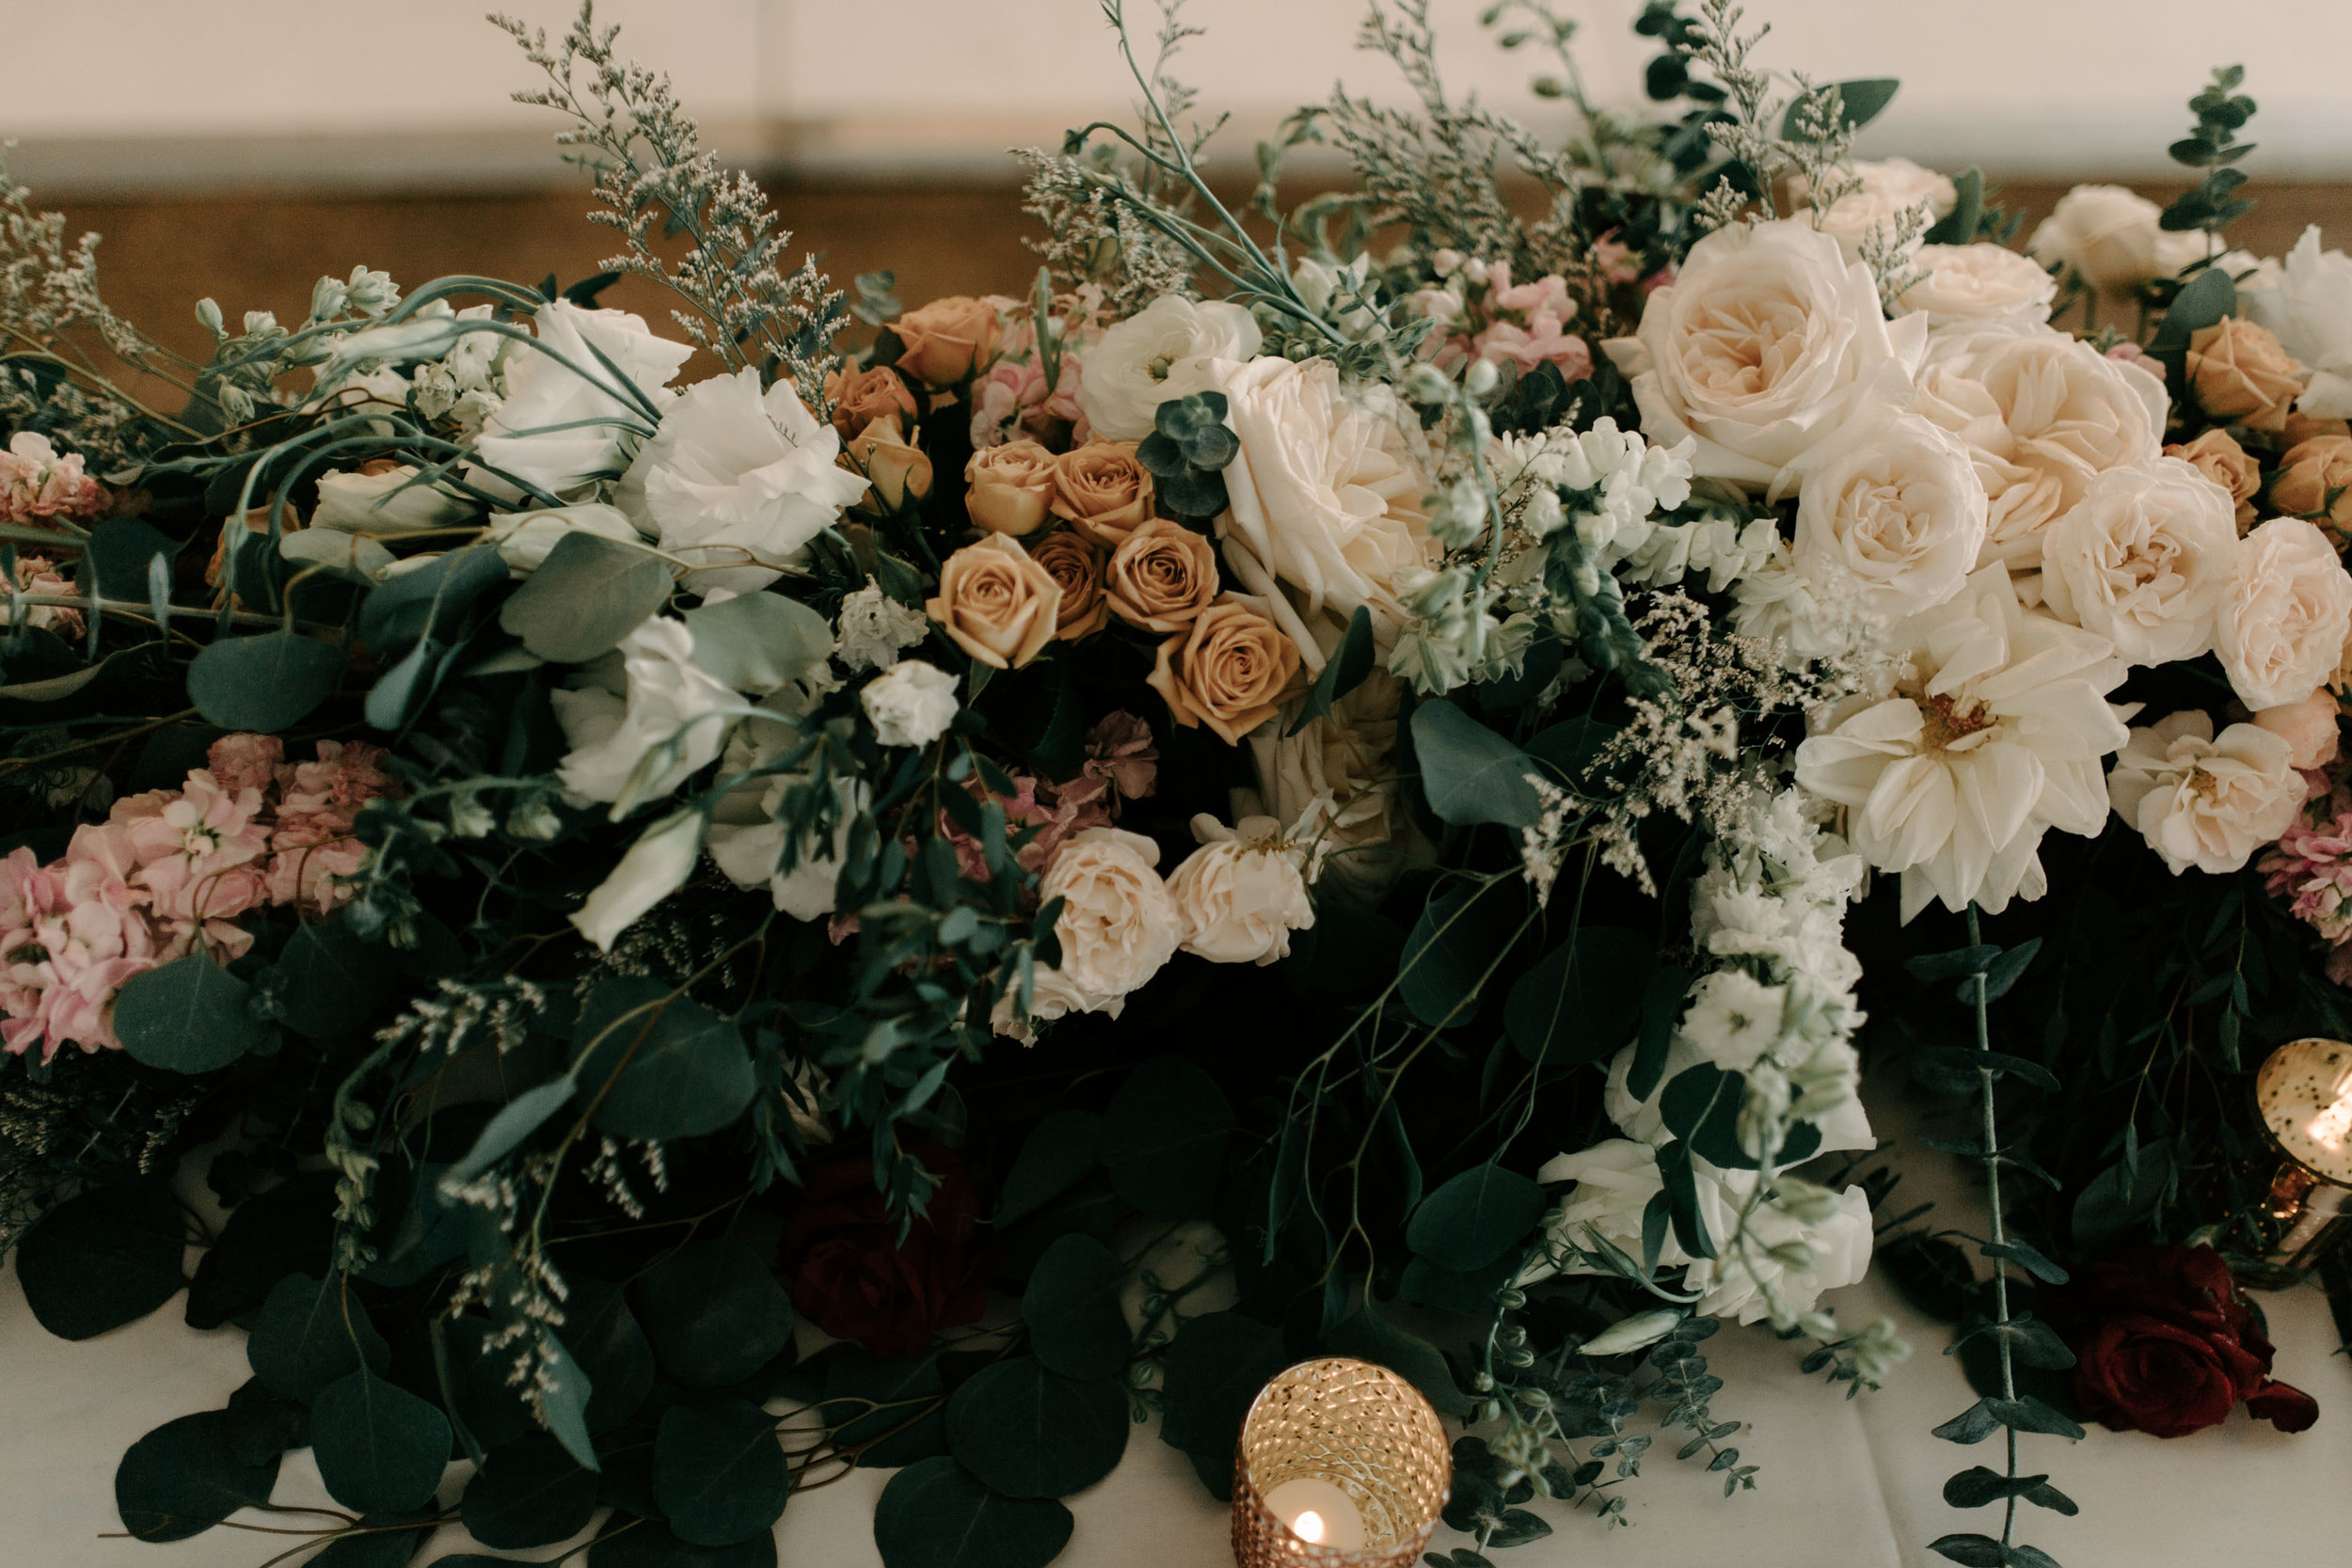 Head Table Floral Ideas - Hawaii Barn Wedding Reception - Sunset Ranch Hawaii Wedding By Oahu Wedding Photographer Desiree Leilani